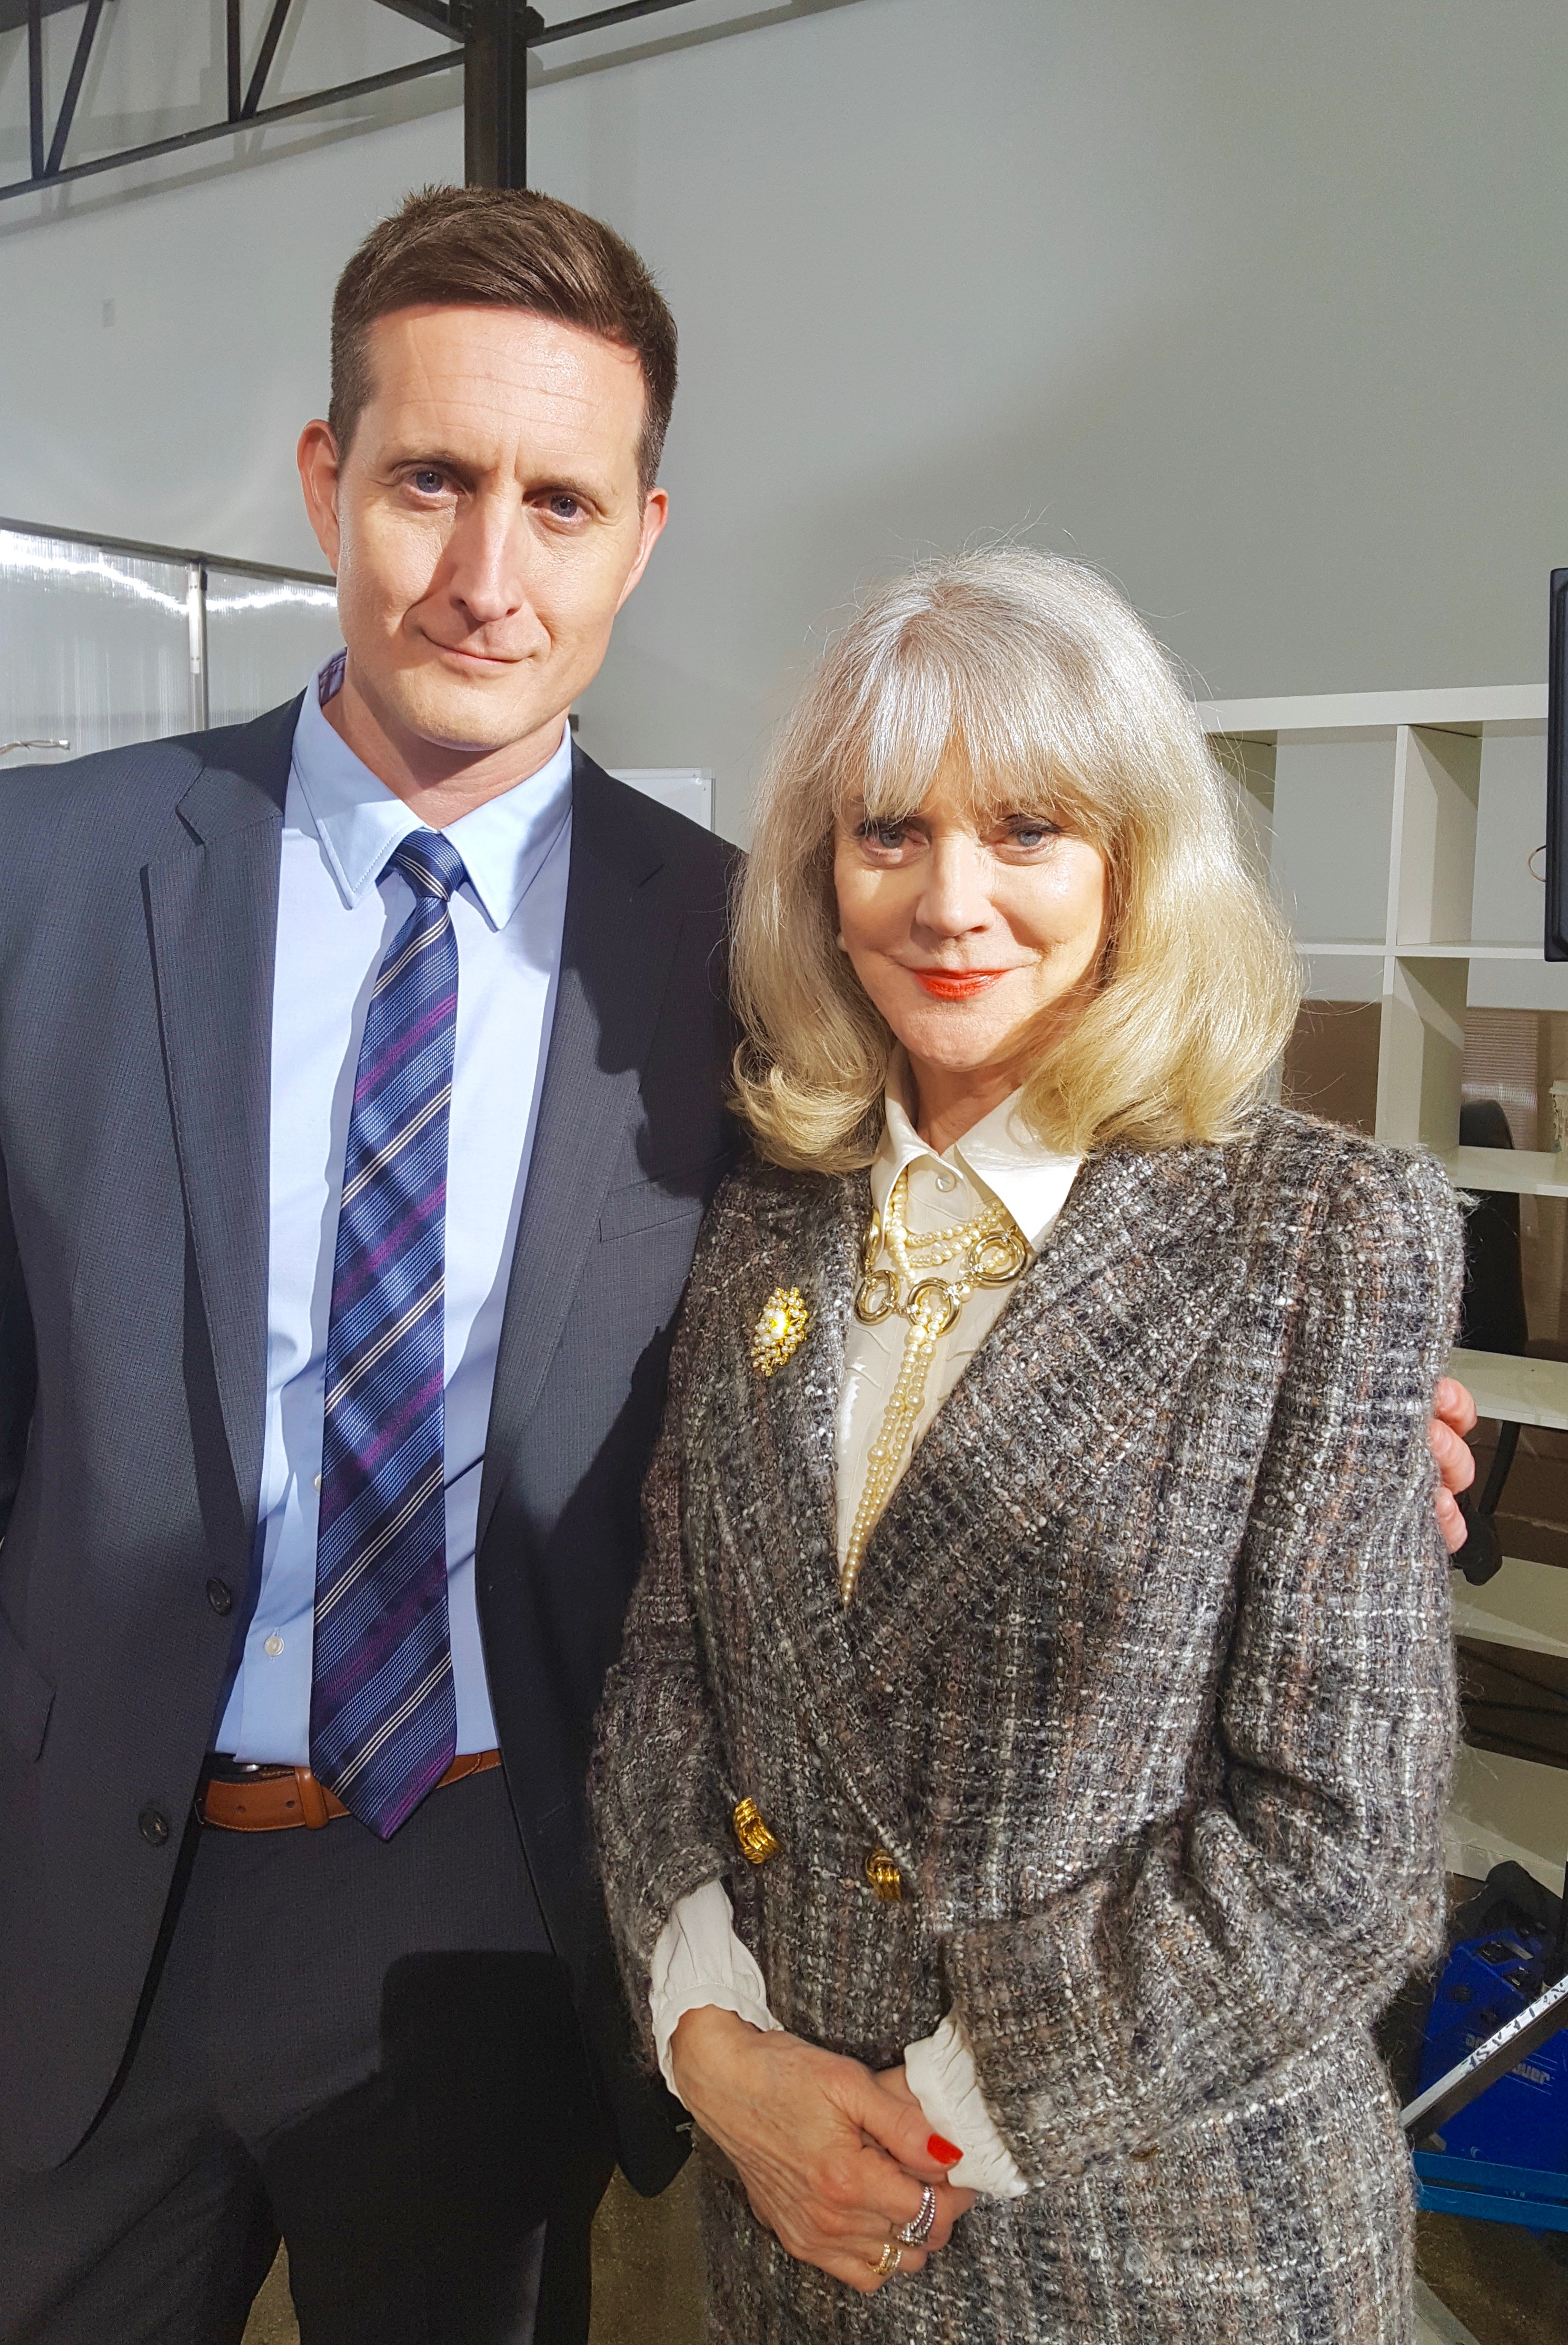 """Curt Cornelius & Blythe Danner on the set of """"Halfway There""""."""